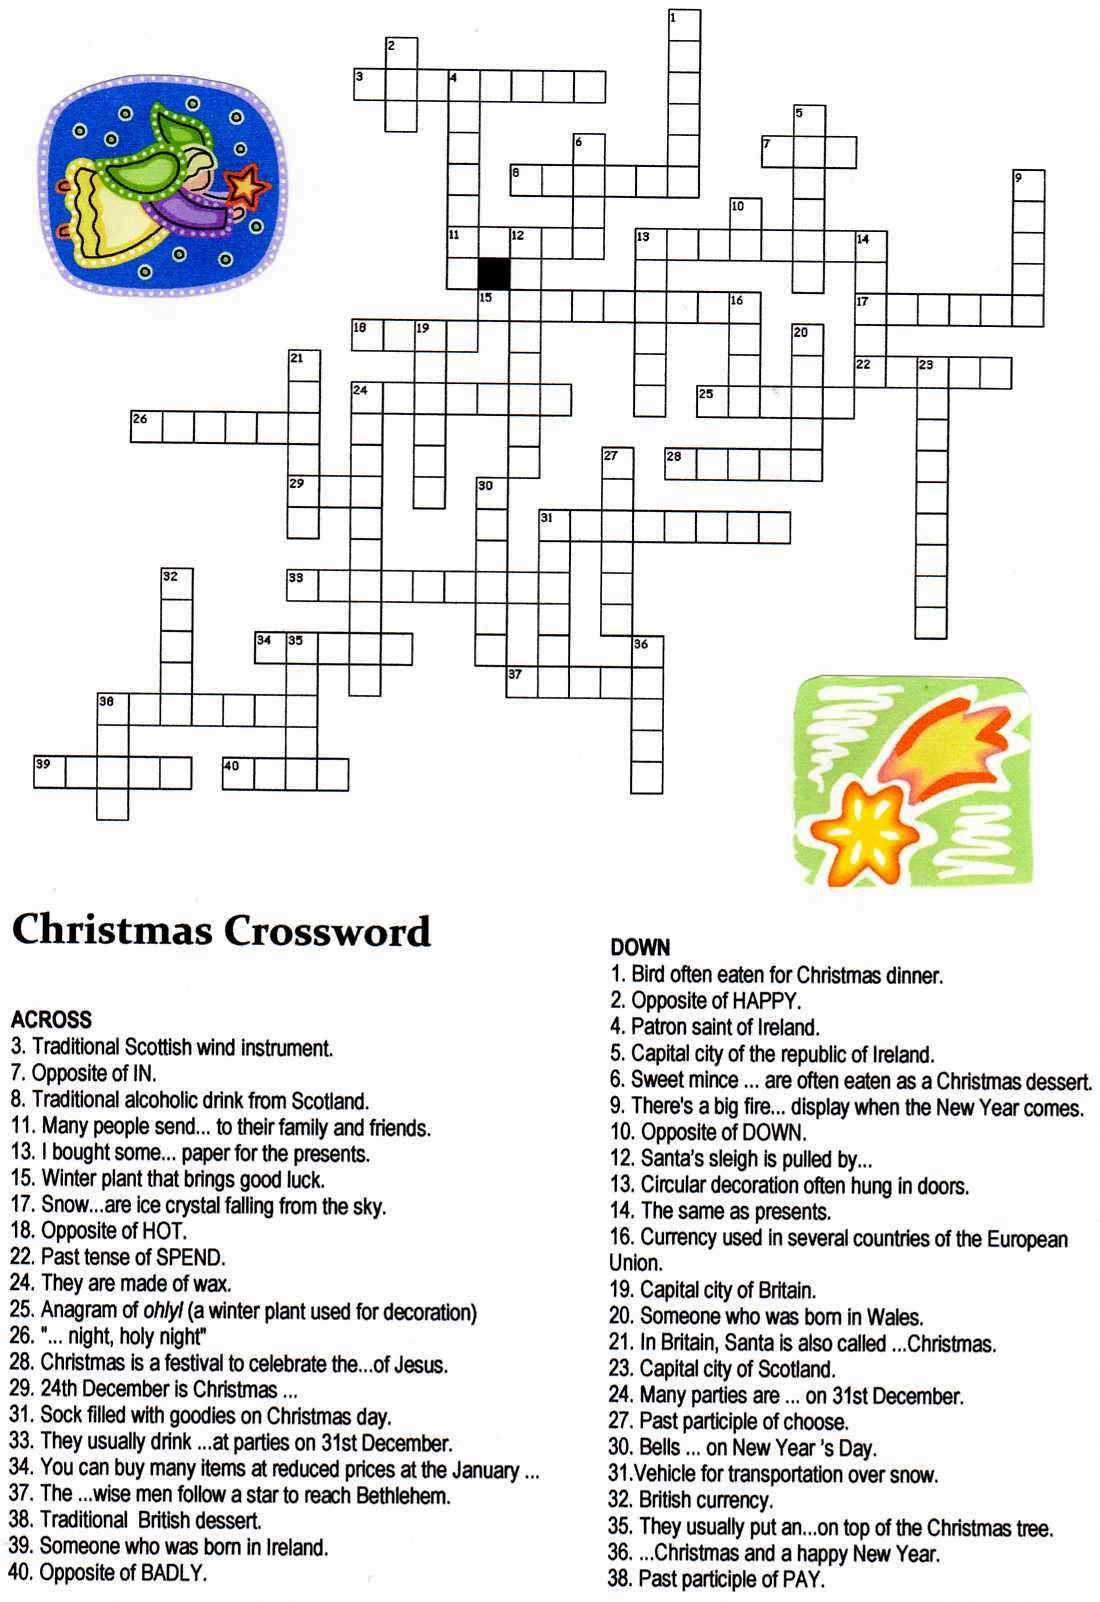 Christmas Crossword Puzzle Printable Middle School